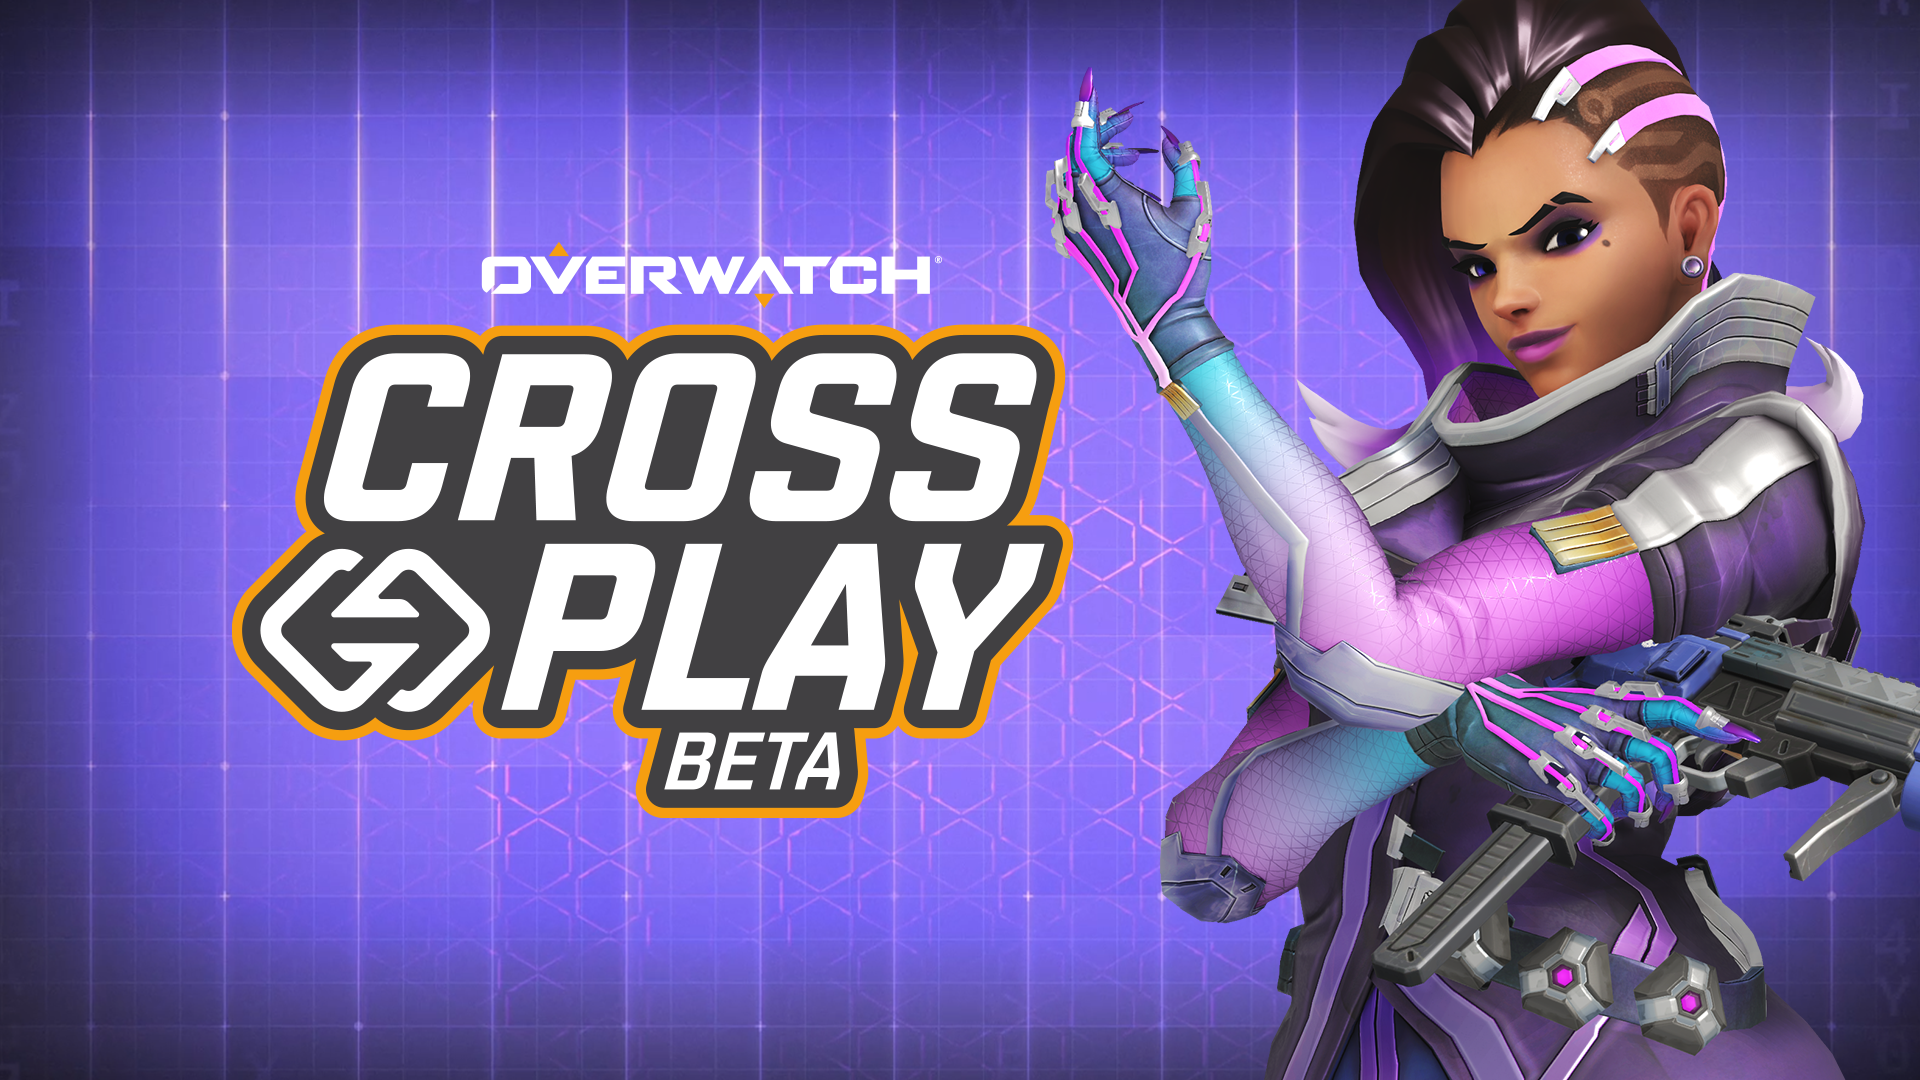 Kick back and enjoy the return of the Overwatch Summer Games!